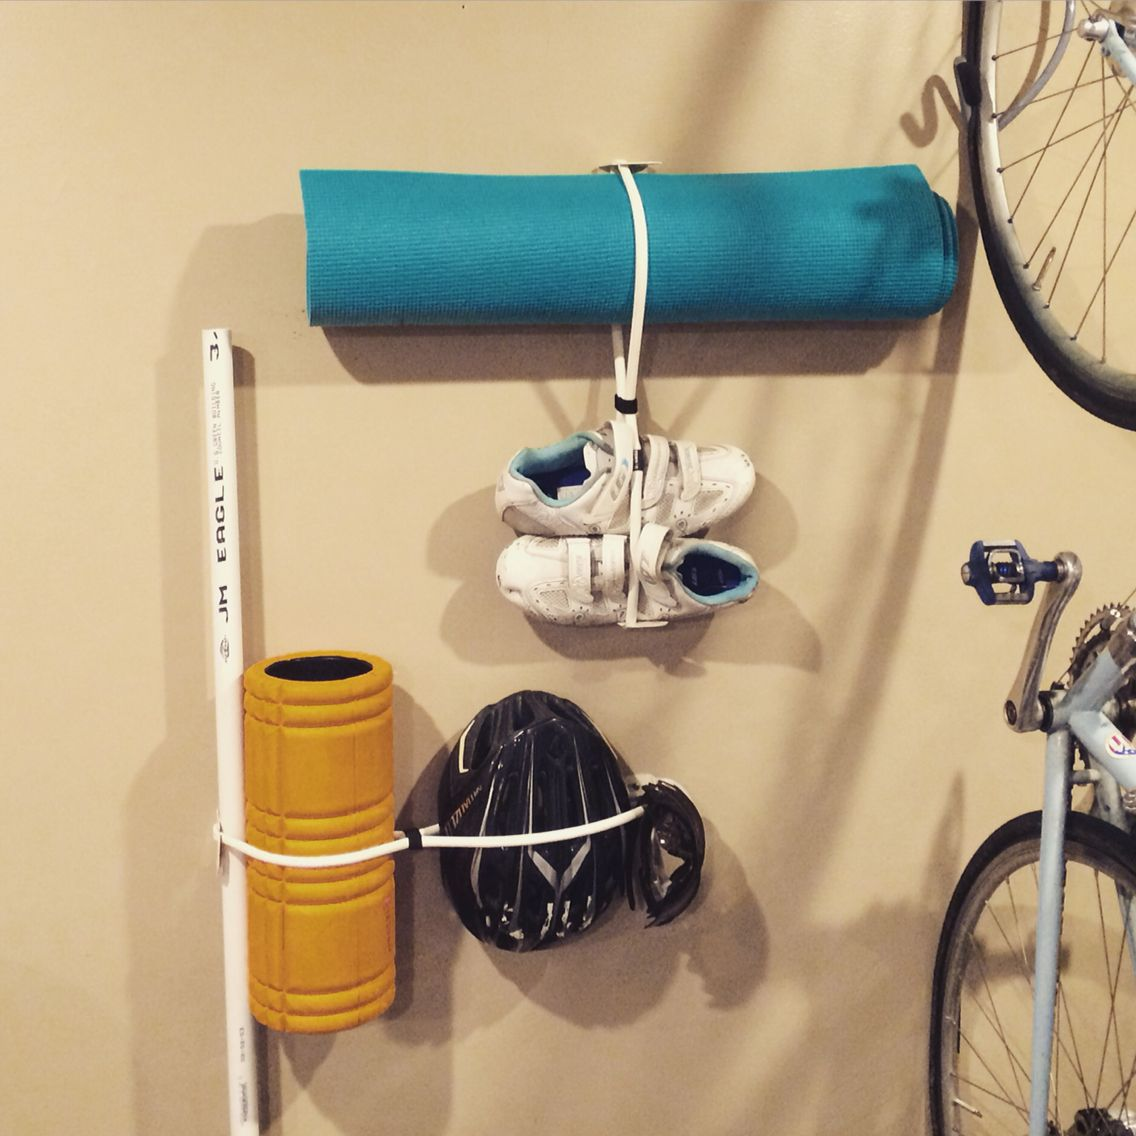 Gear Grabber Organizing Yoga Mat, Foam Roller, Bike Helmet, Shoes And More.